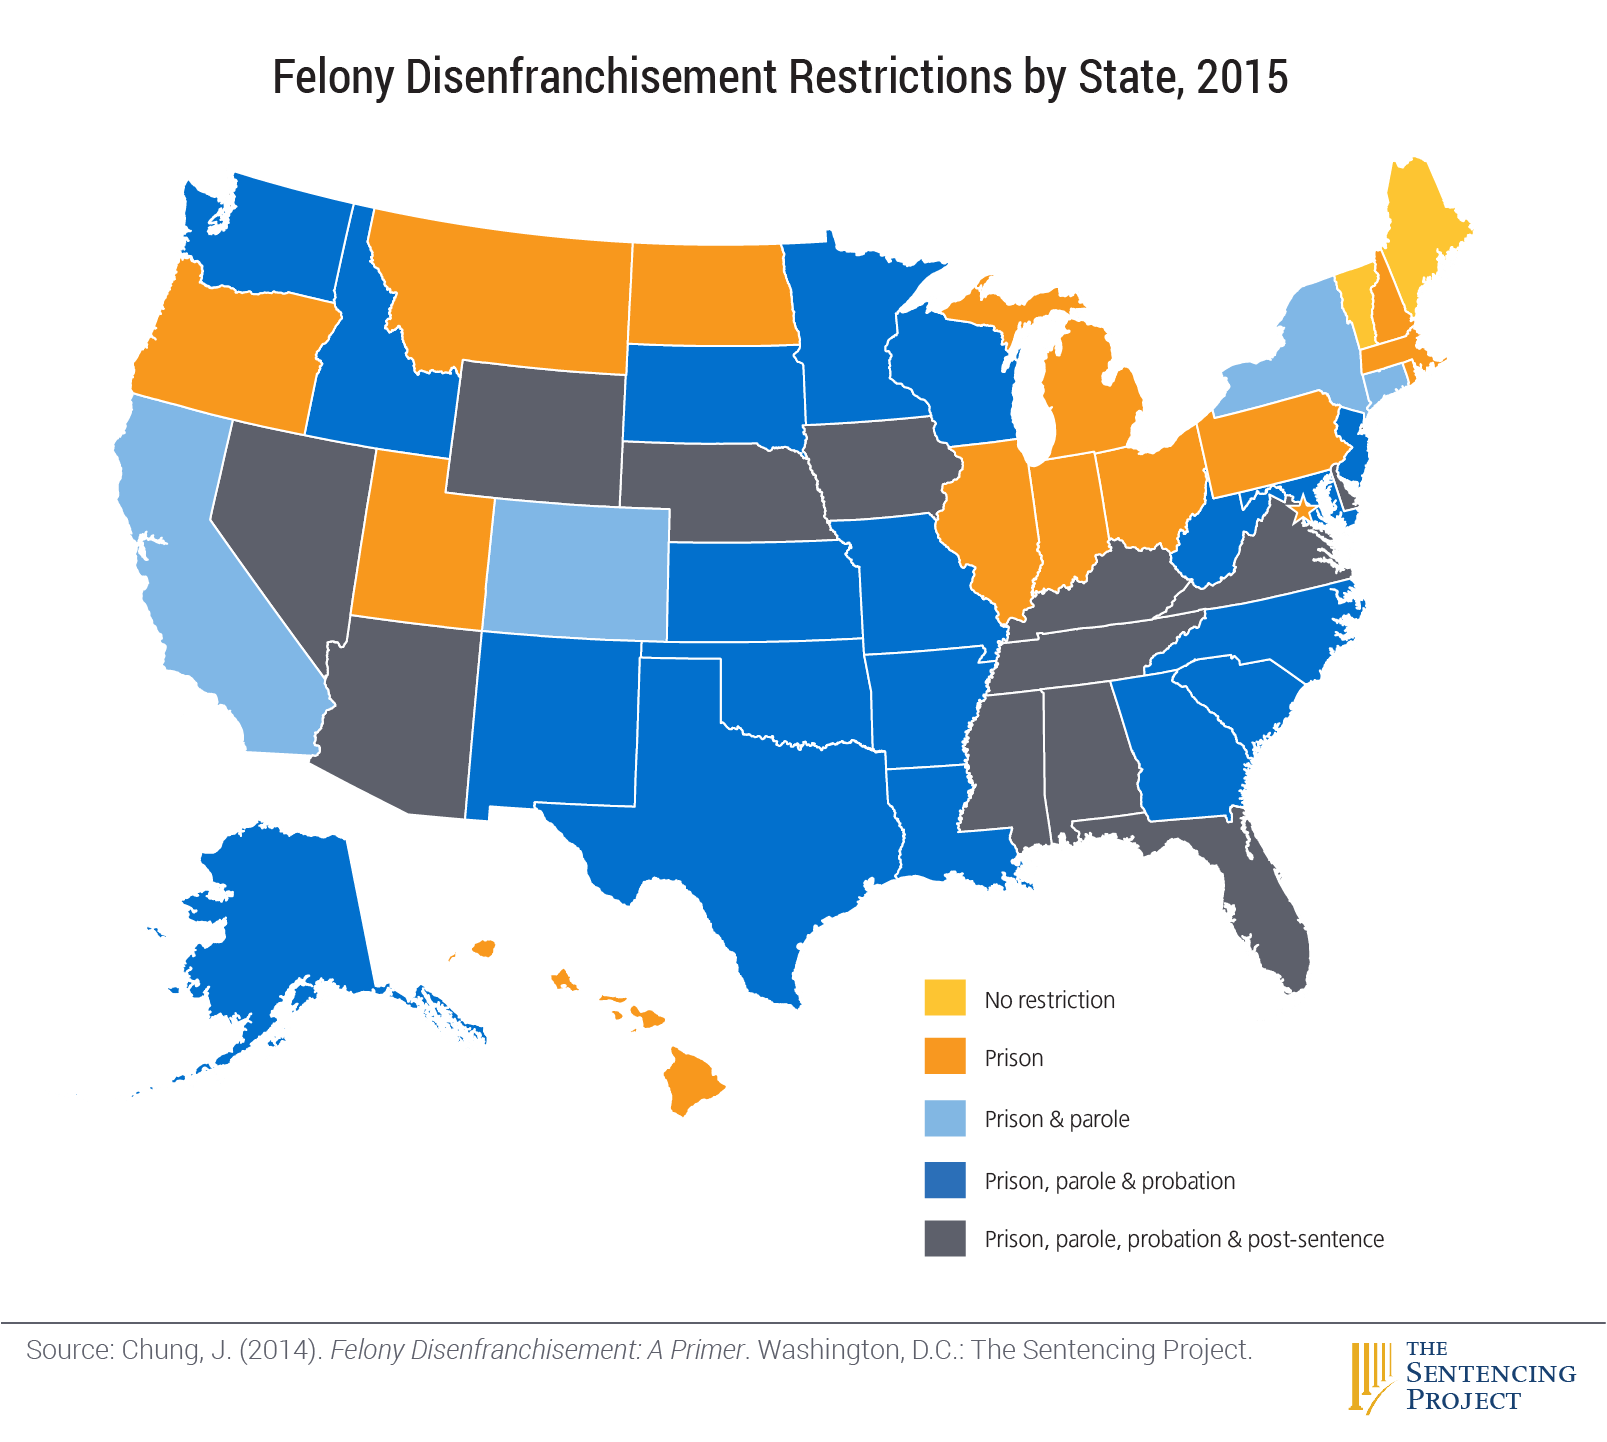 Felony Disenfranchisement_2015.png